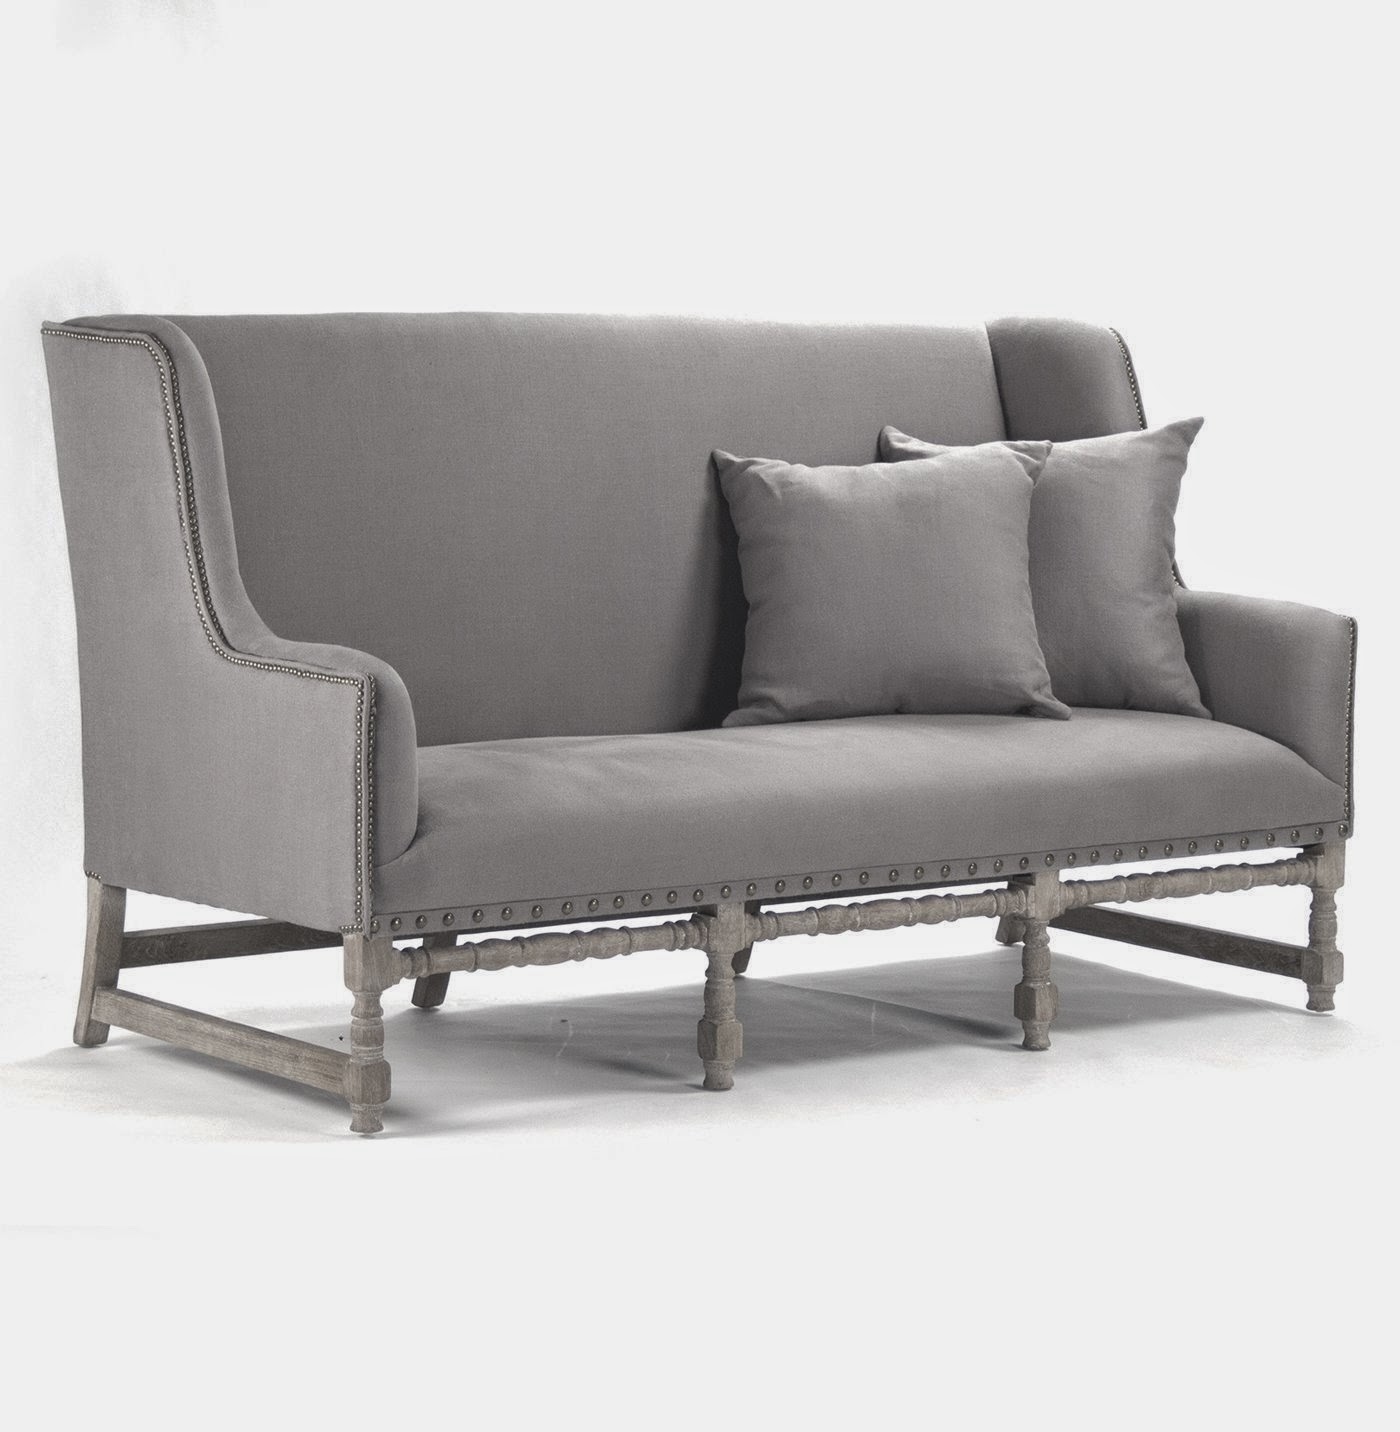 oversized couches: oversized deep couches